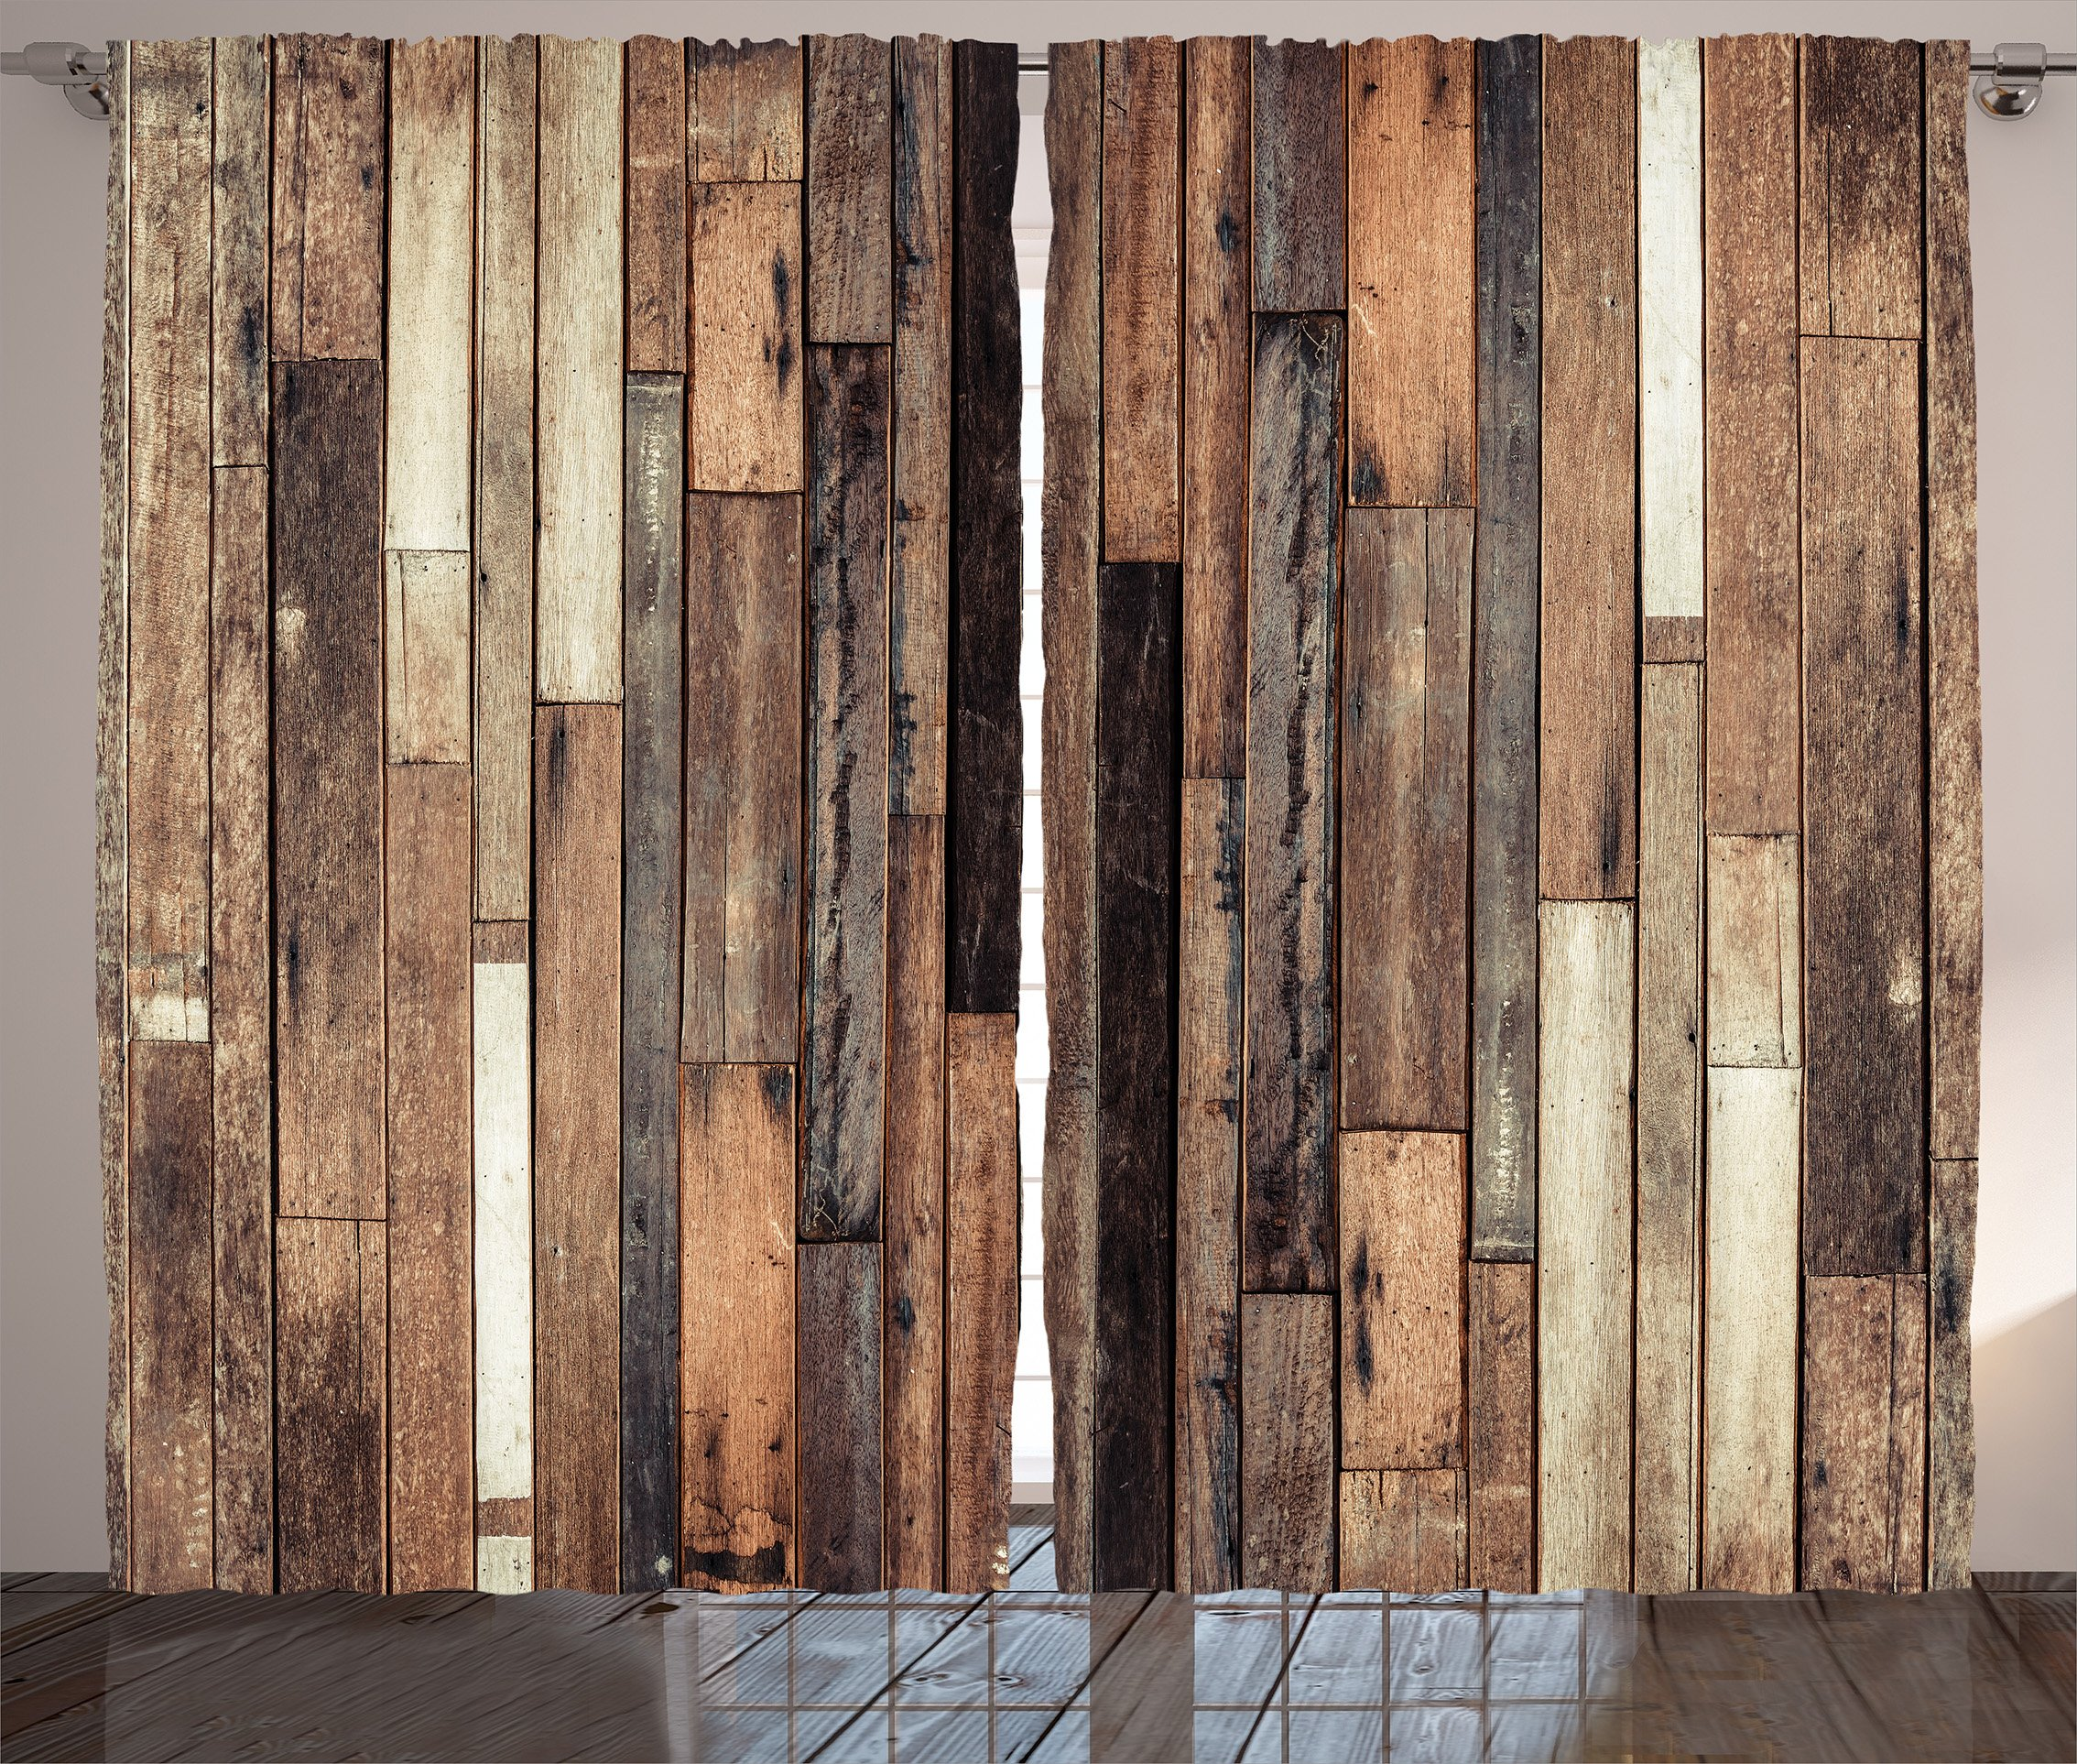 Ambesonne Wooden Curtains 2 Panel Set by, Brown Old Hardwood Floor Plank Grunge Lodge Garage Loft Natural Rural Graphic Artsy Print, Living Room Bedroom Decor, 108 W X 90 L Inches, Brown by Ambesonne (Image #1)